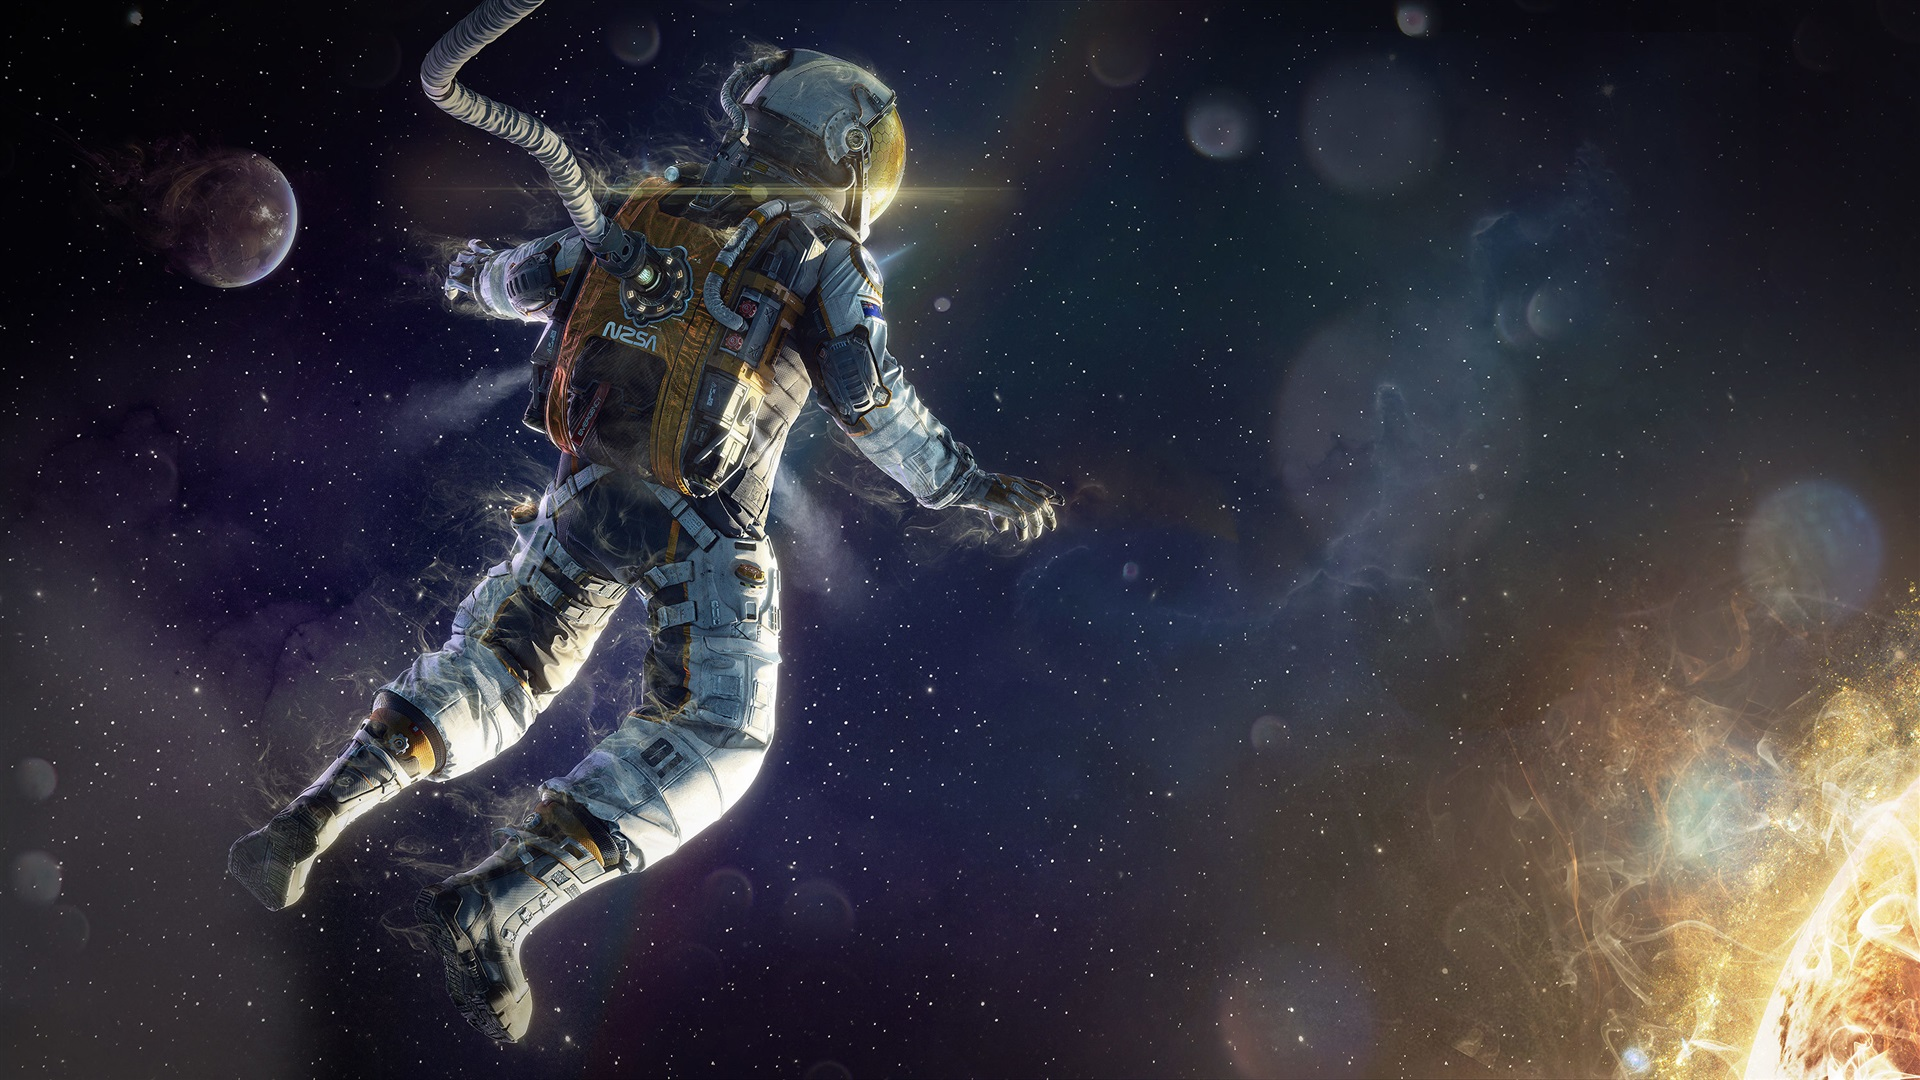 astronaut in space painting - photo #11